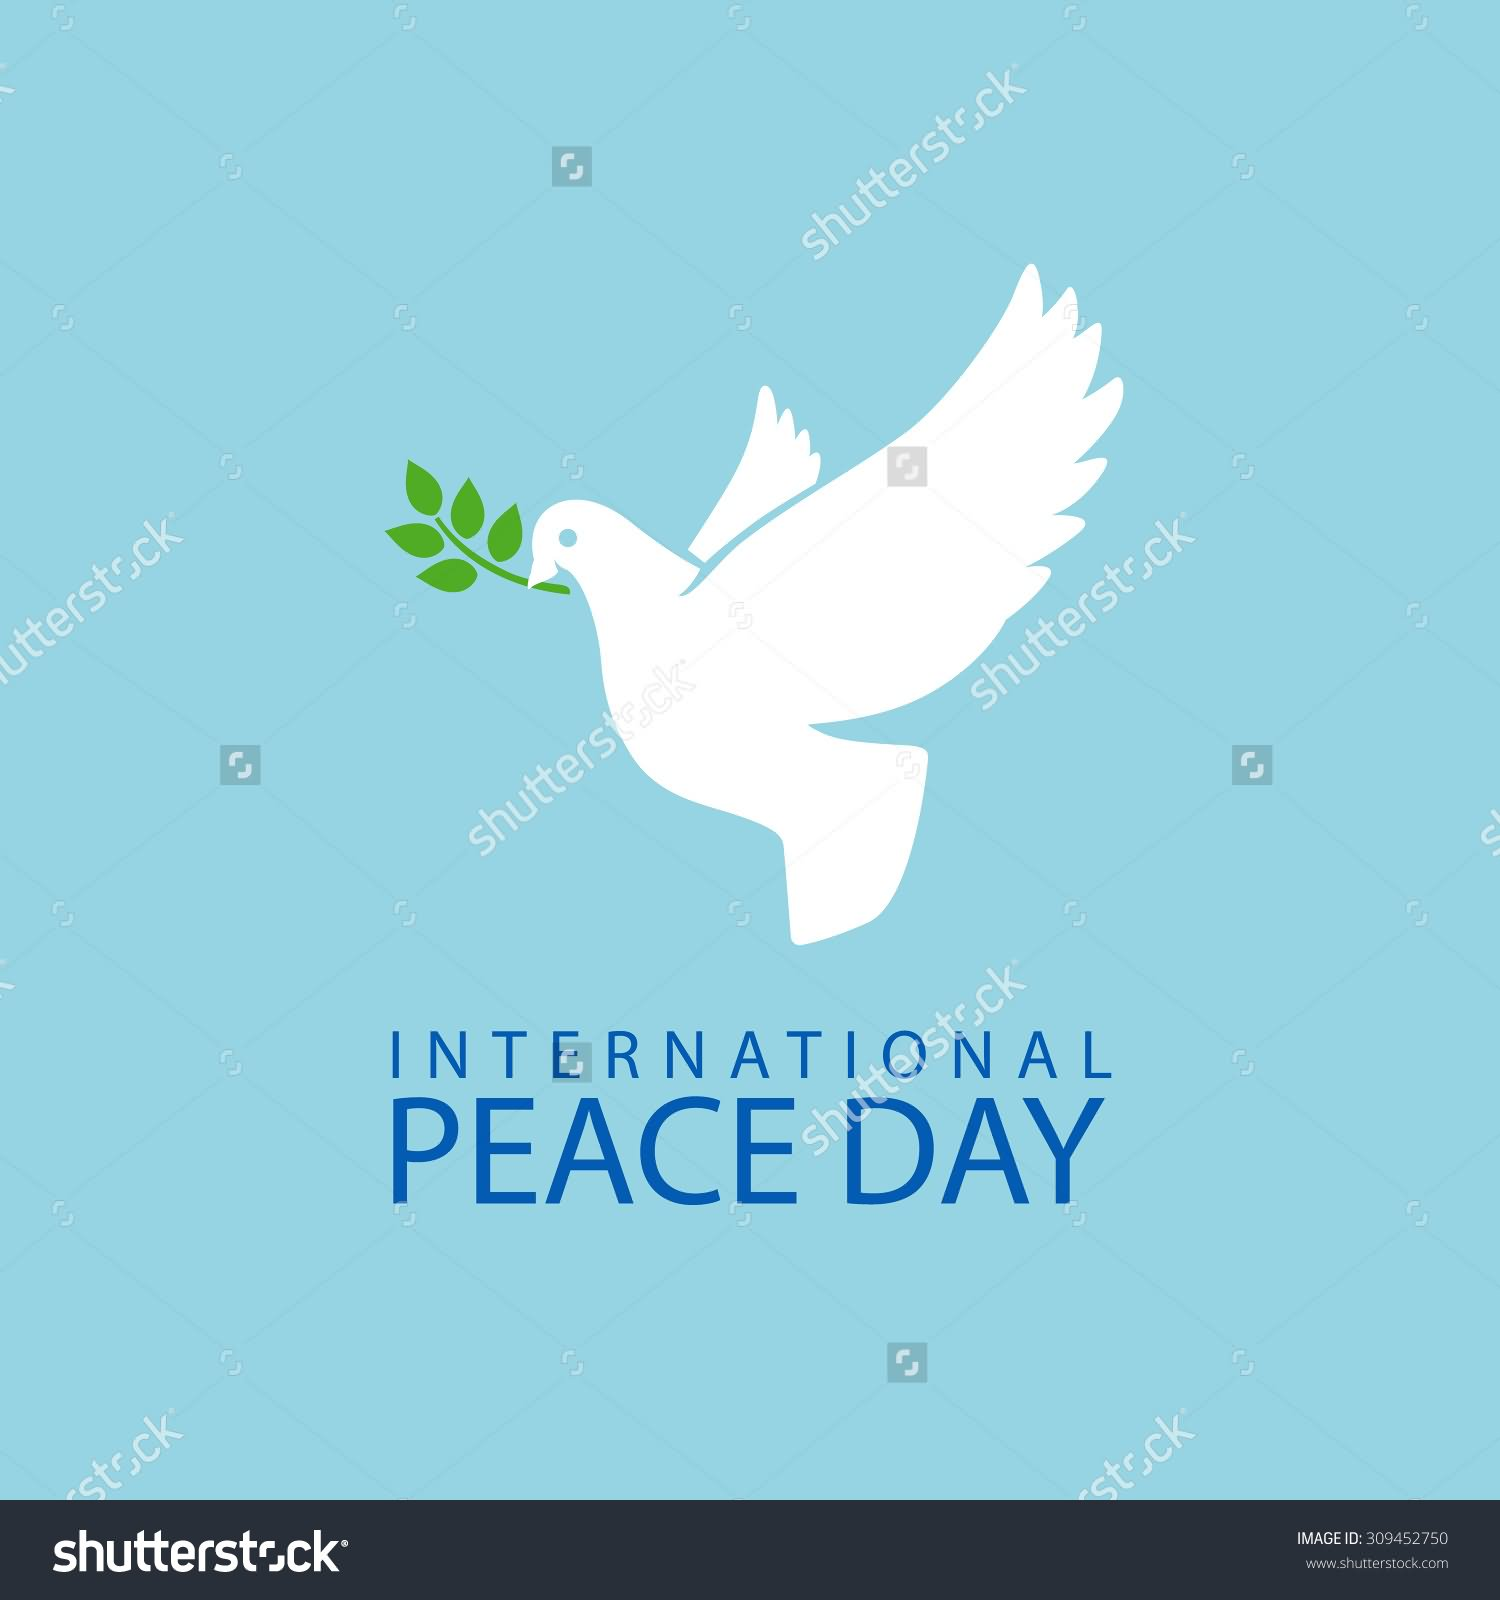 91-International Peace Day Wishes